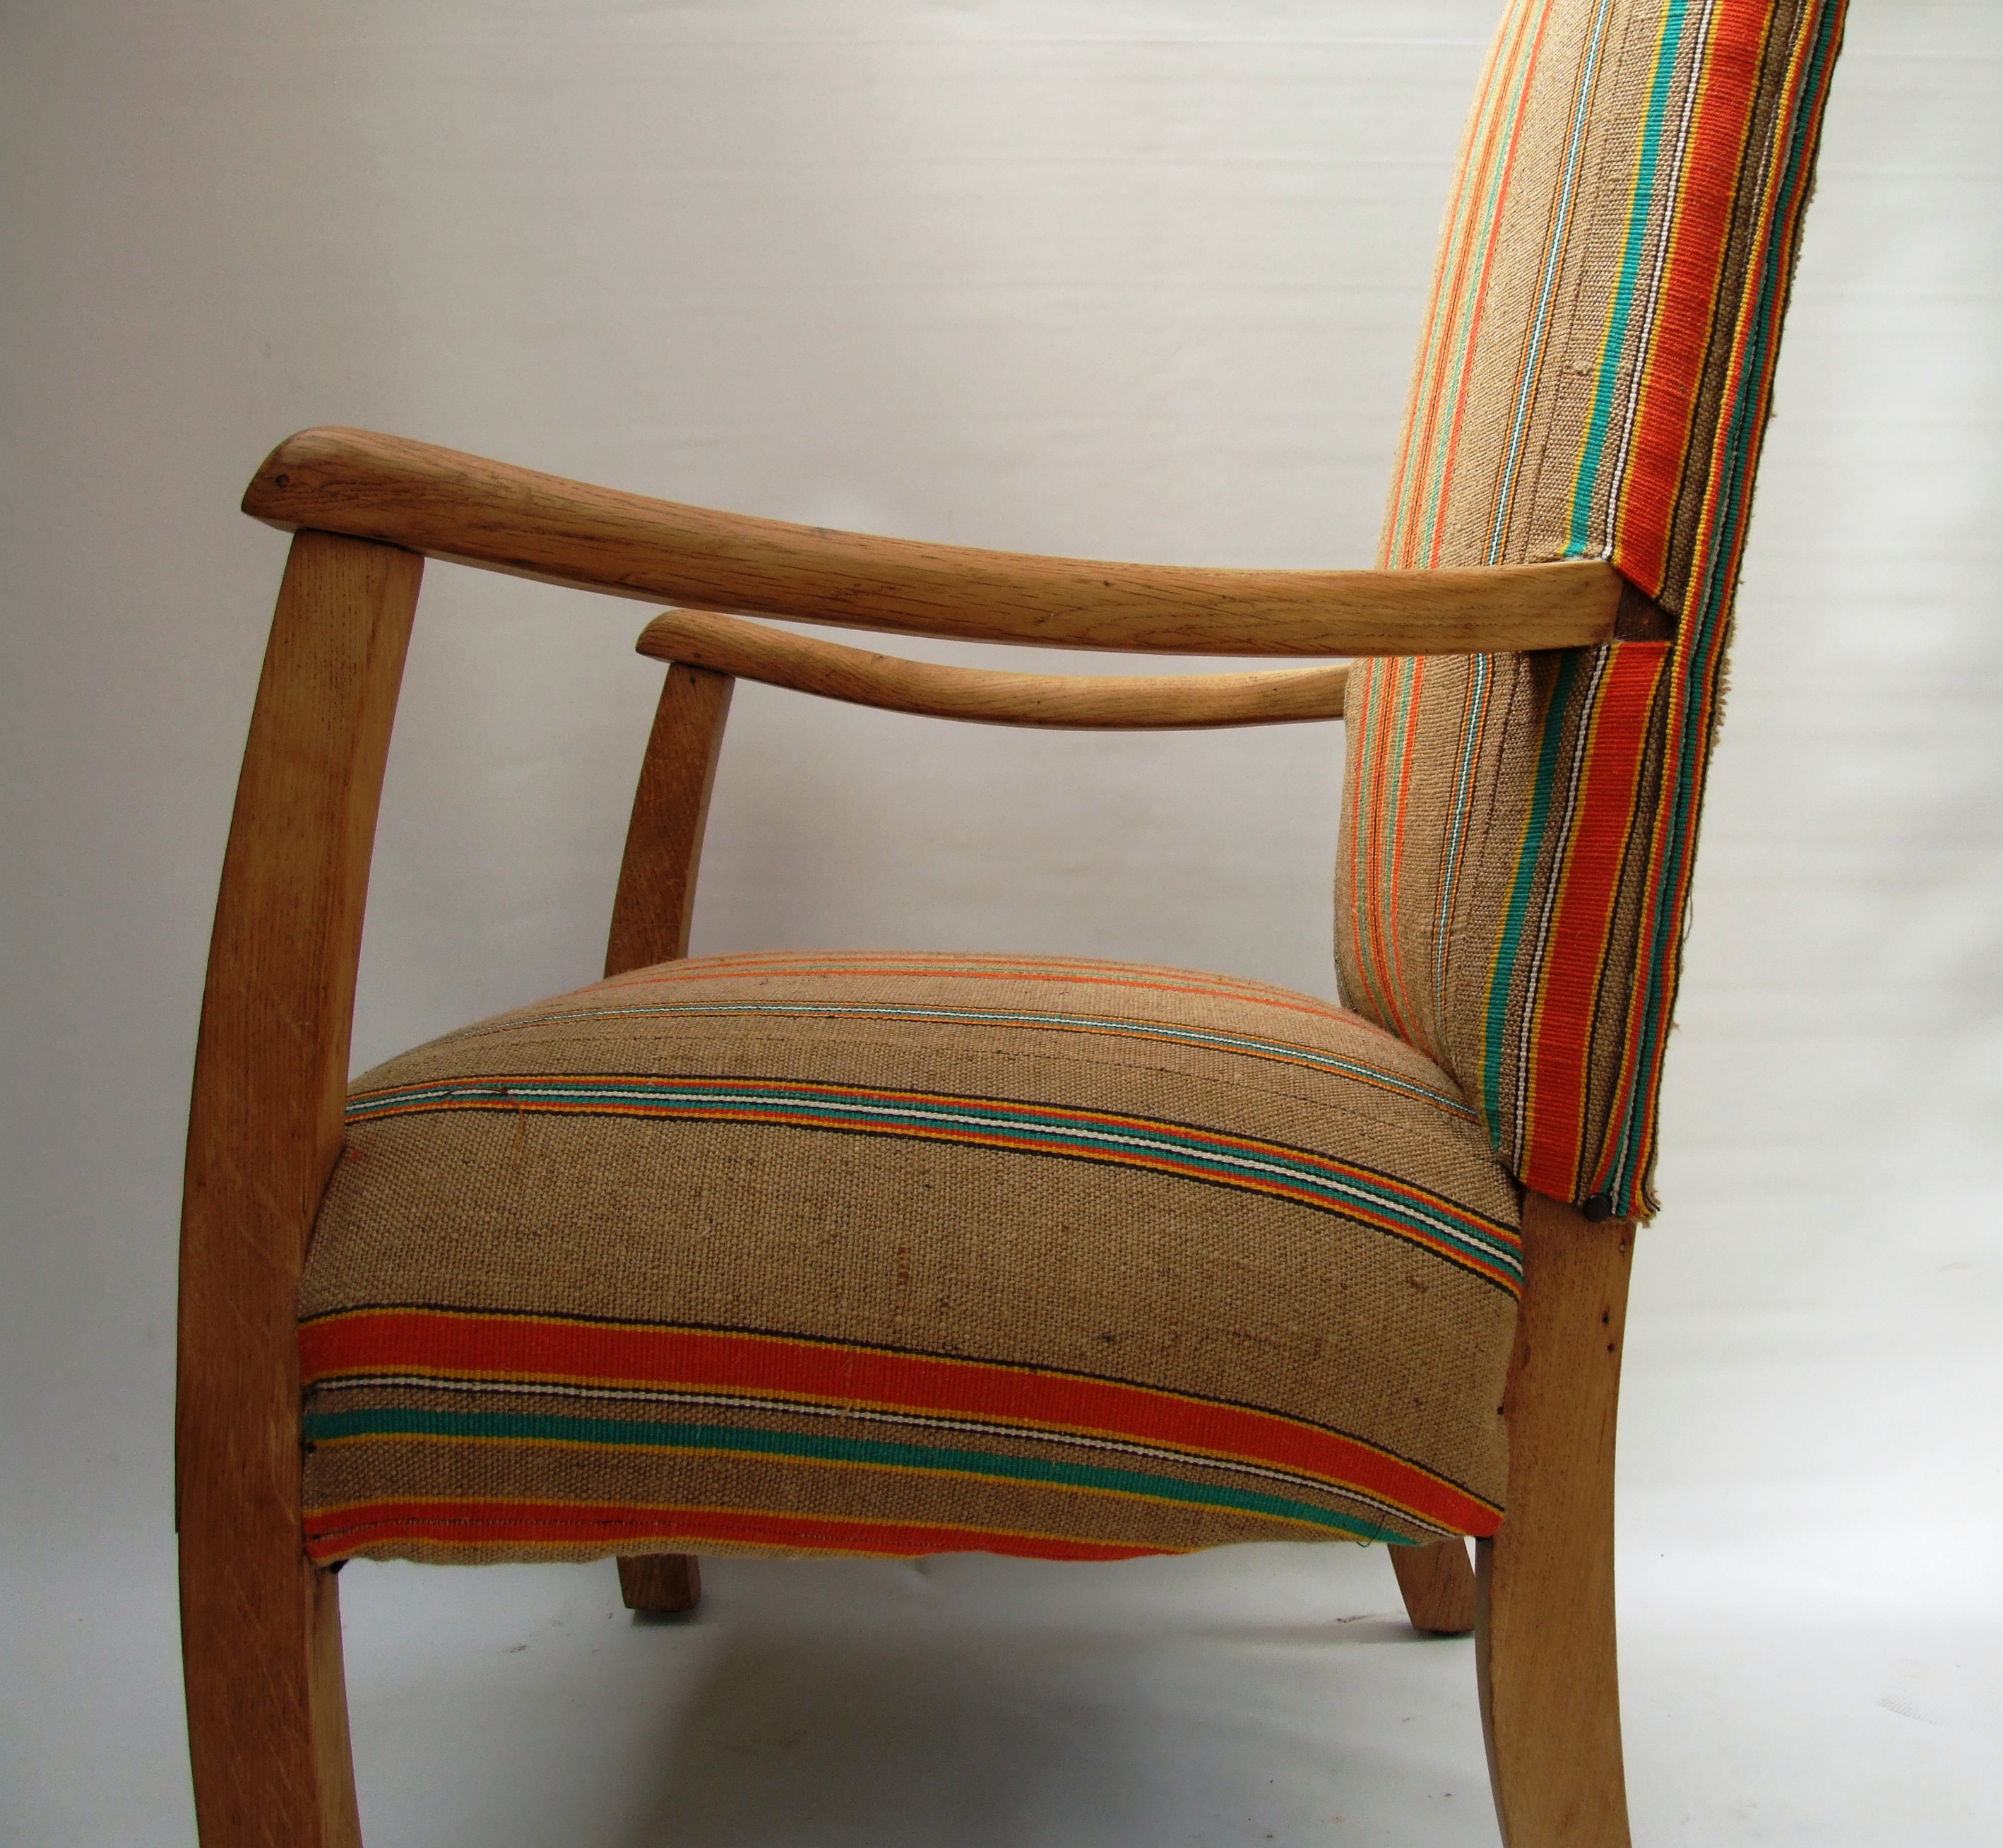 1930s Fireside Chair Recovered In Vintage French